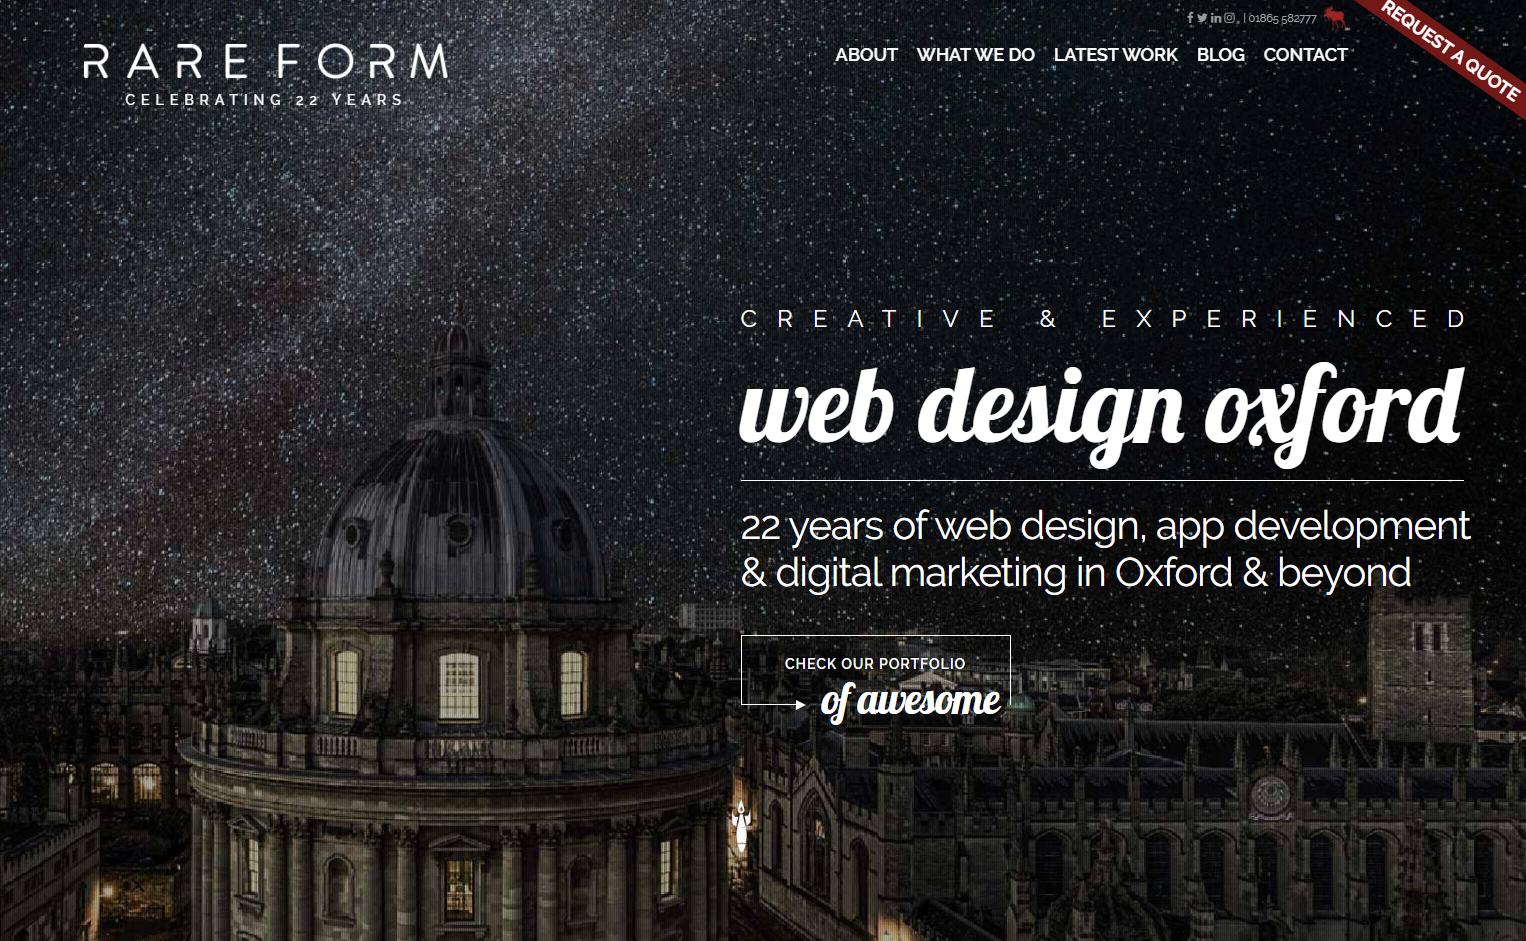 Oxford Web Design Agency Celebrates 22 Years